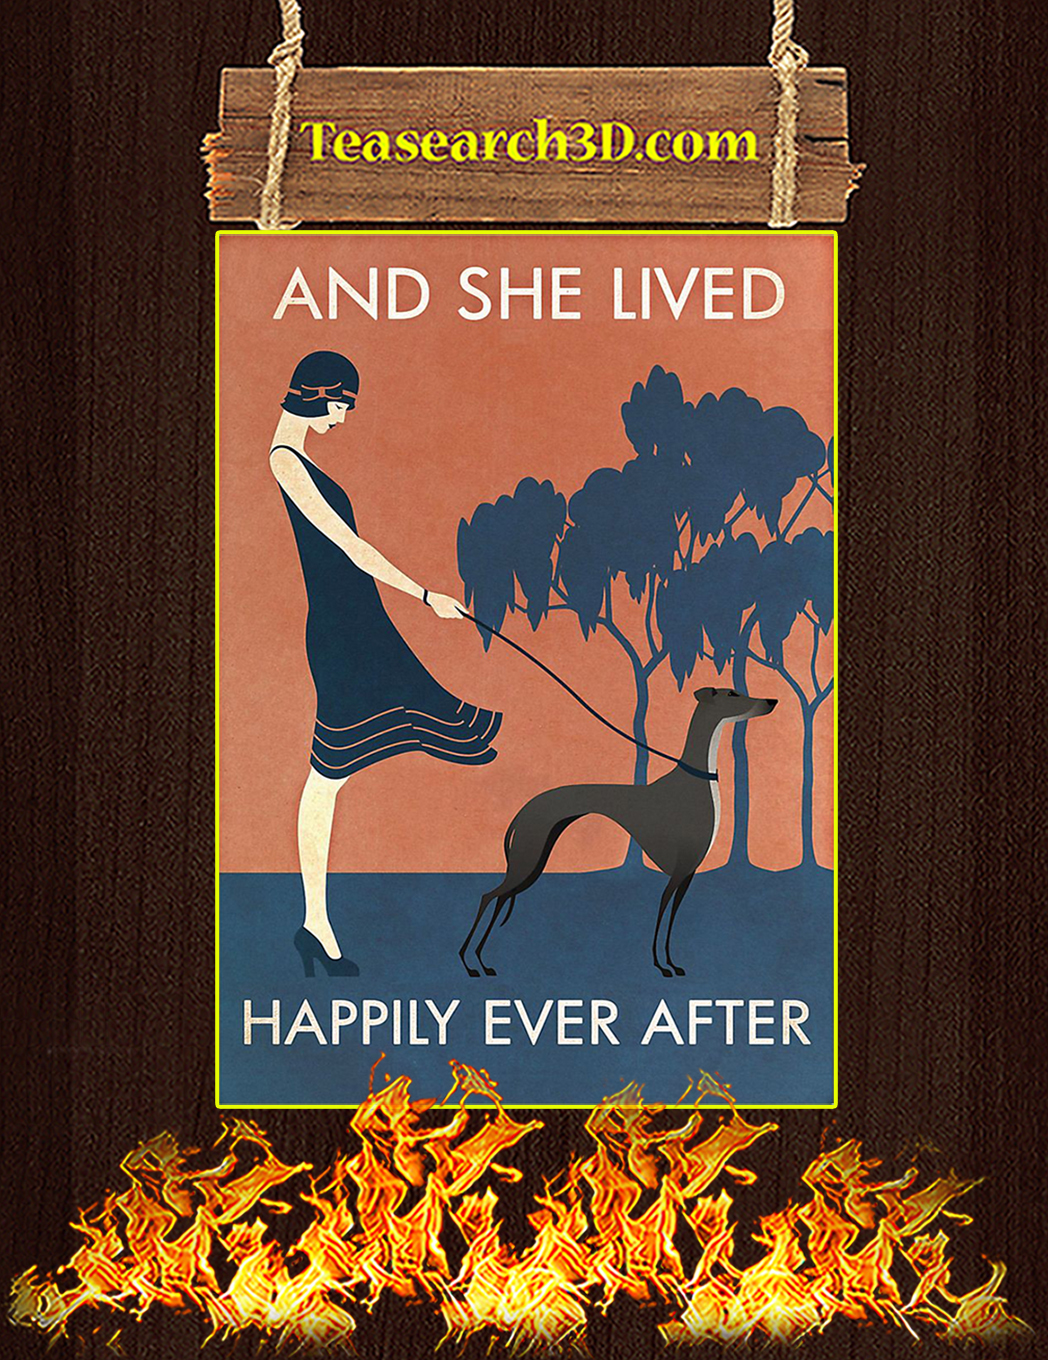 And She Lived Happily Ever After Greyhound Poster A1